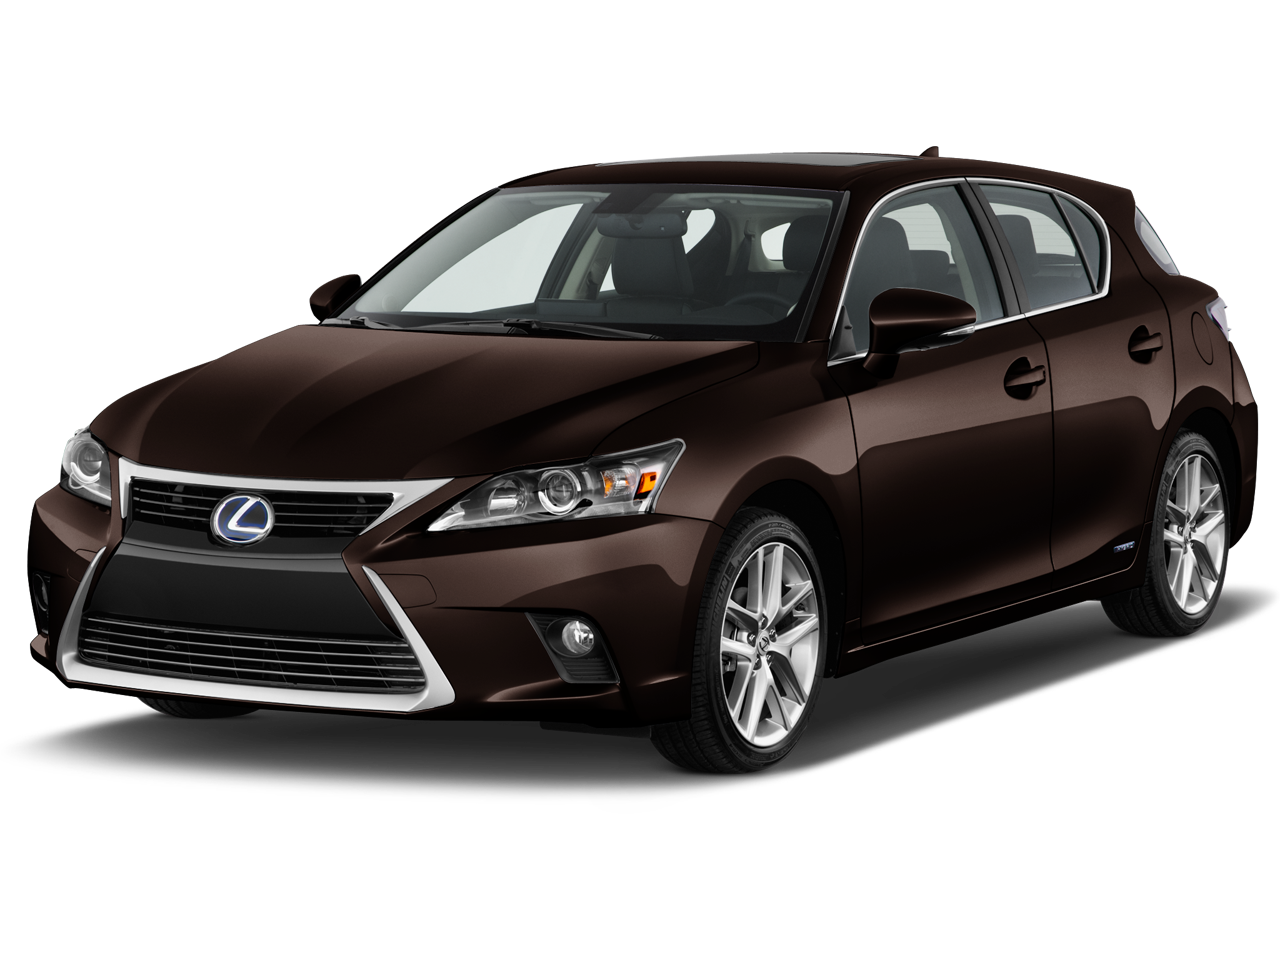 new 2017 lexus ct 200h near chantilly va pohanka lexus. Black Bedroom Furniture Sets. Home Design Ideas